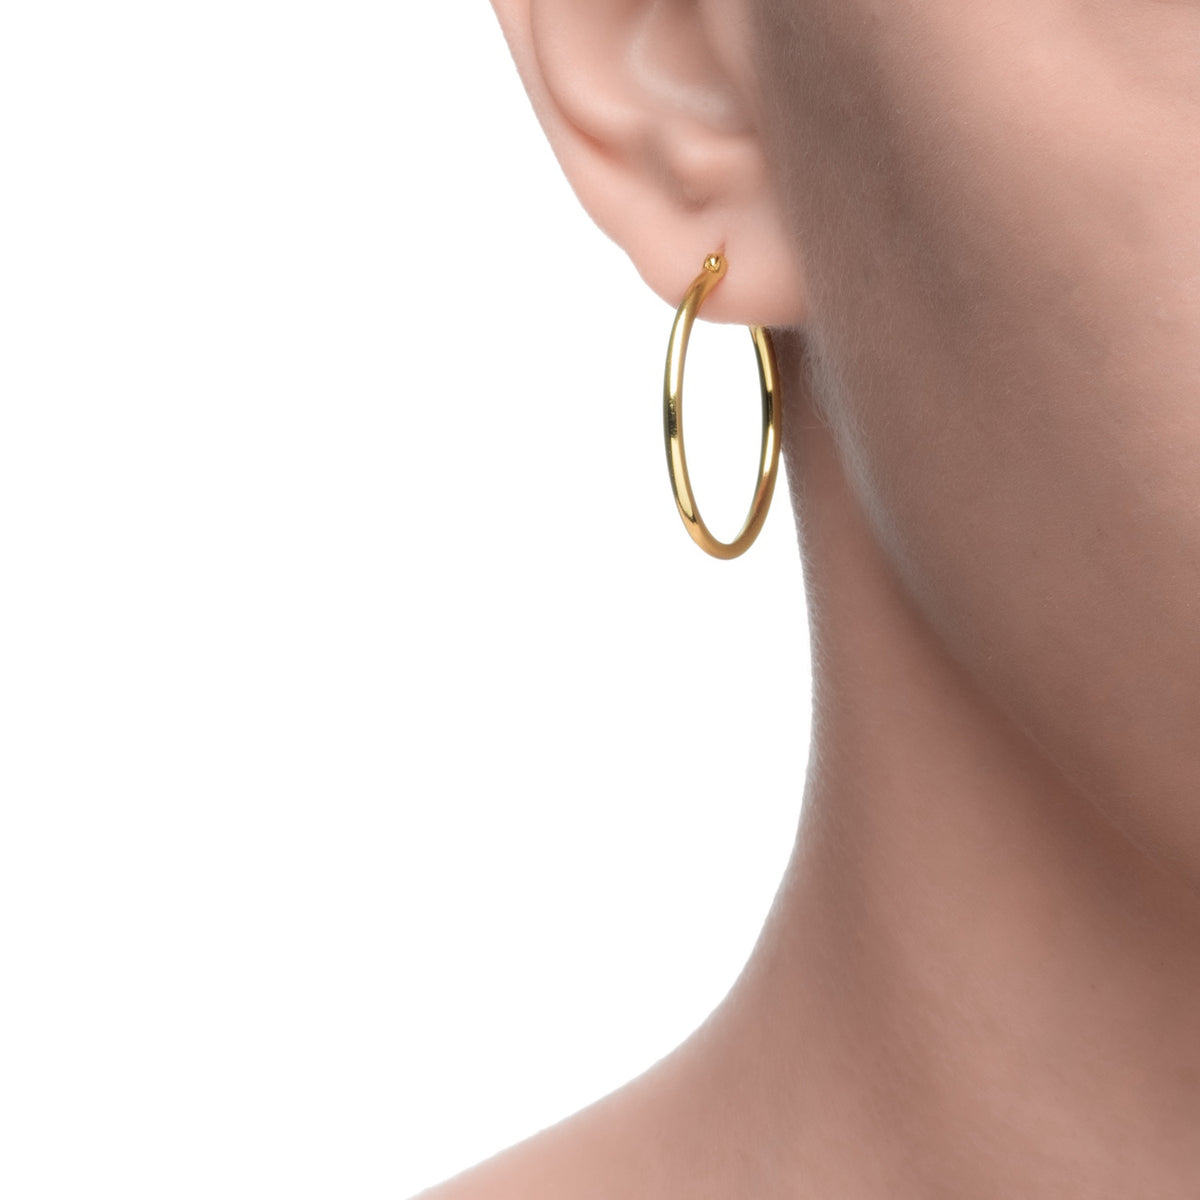 Magna | Toddler Hoop Earrings | 14K Gold Plated 925 Silver